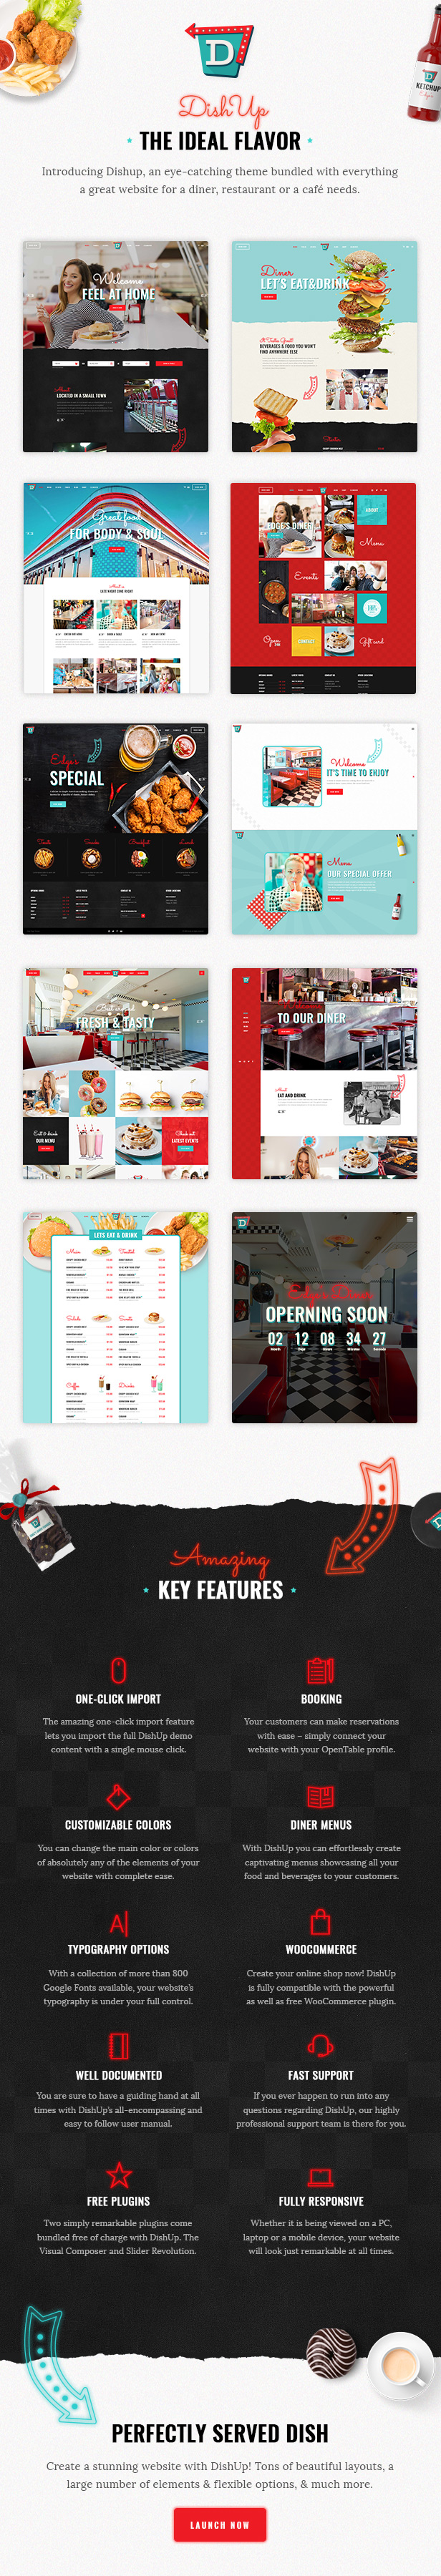 WordPress theme DishUp - A Theme for Diners and Restaurants (Restaurants & Cafes)